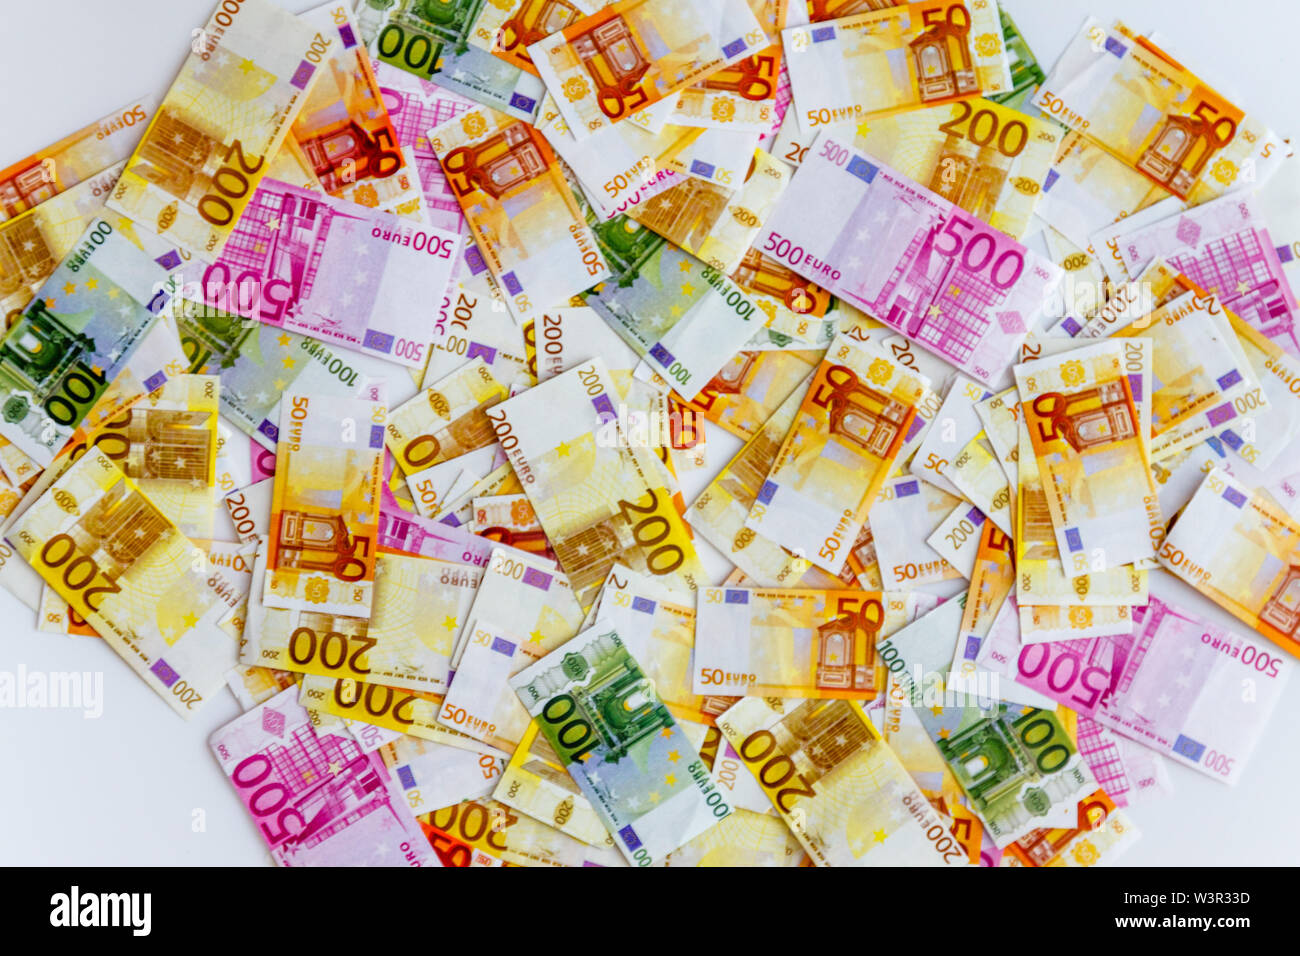 a lot of euro banknotes on a white background and a magnifying glass on top, top view. - Stock Image